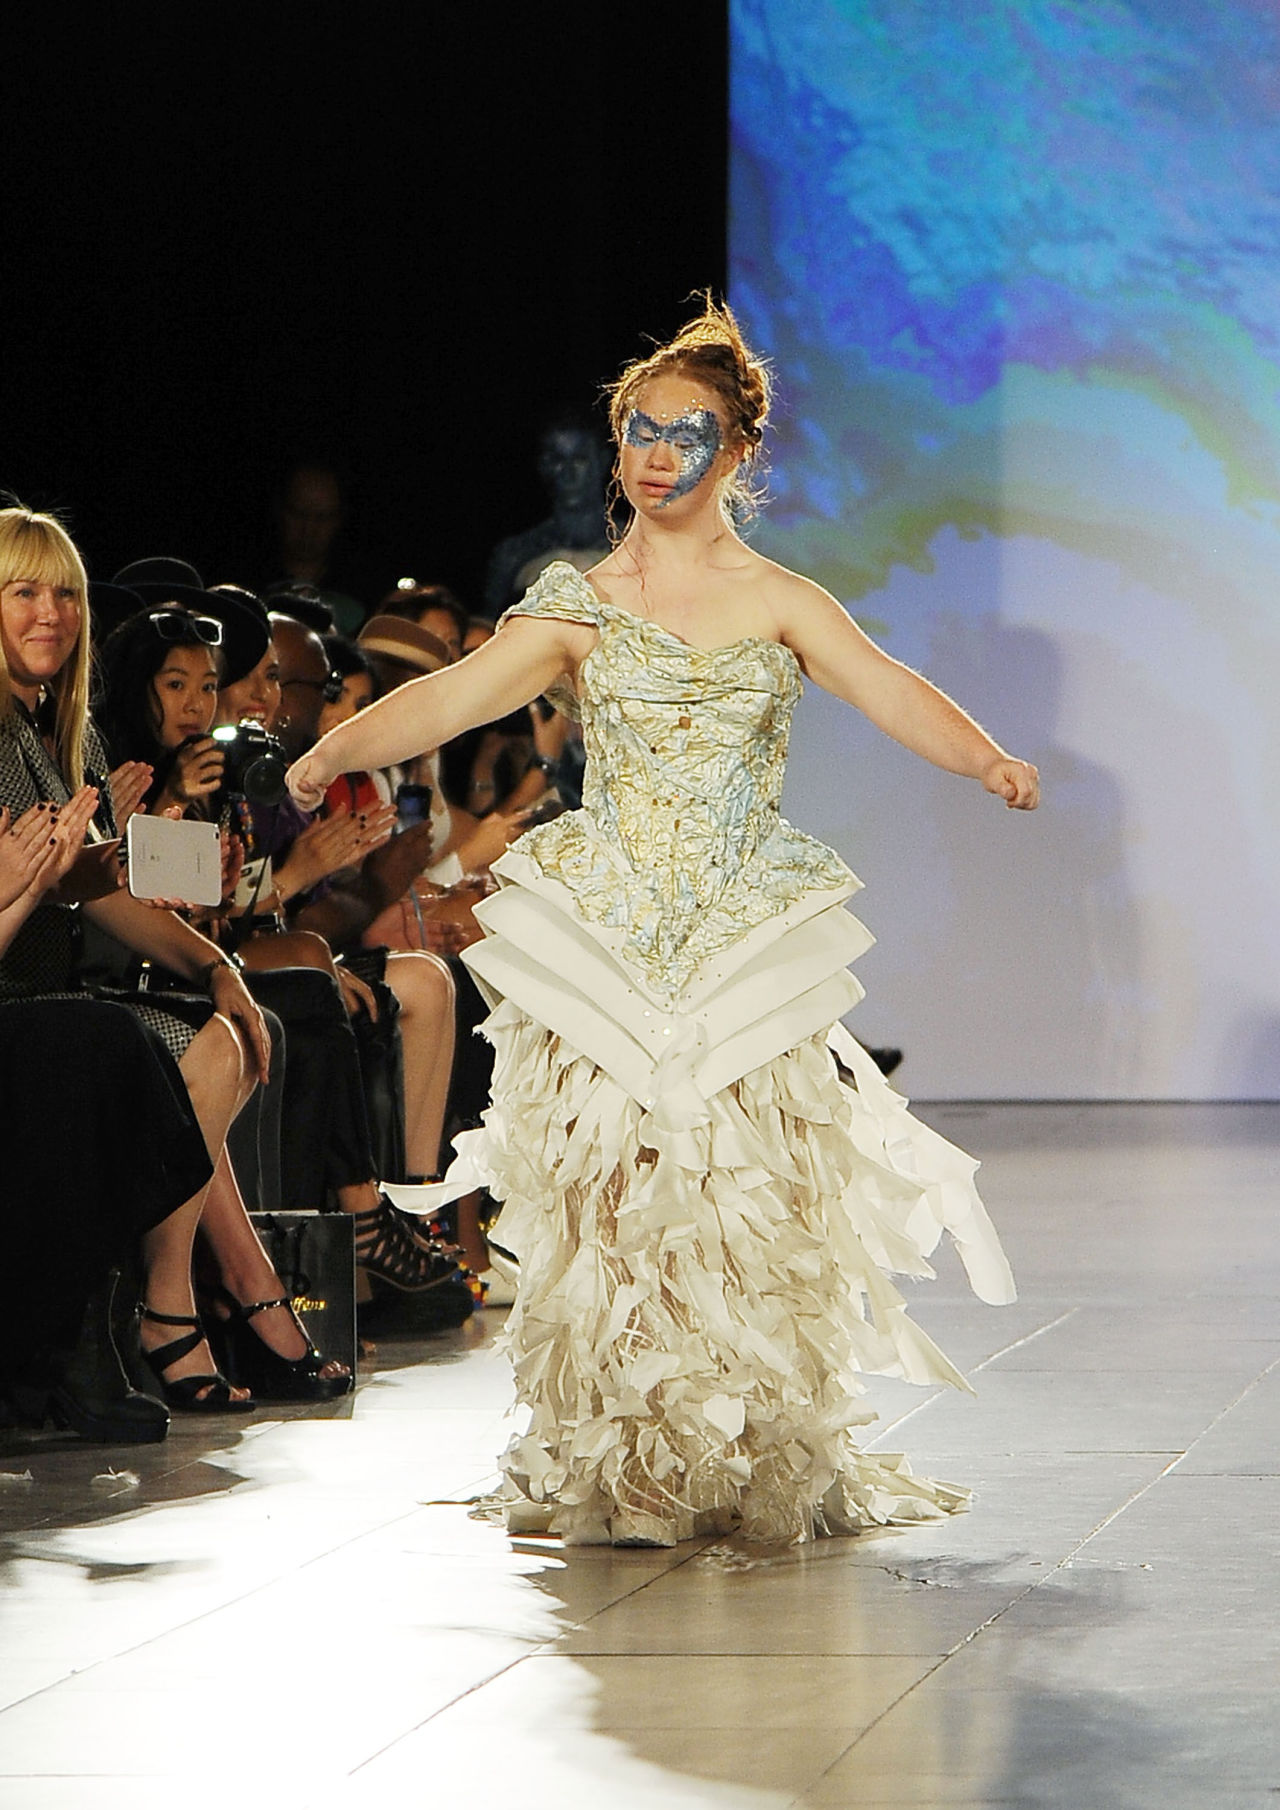 18 Year Old Model With Down Syndrome Ruled The Runway At